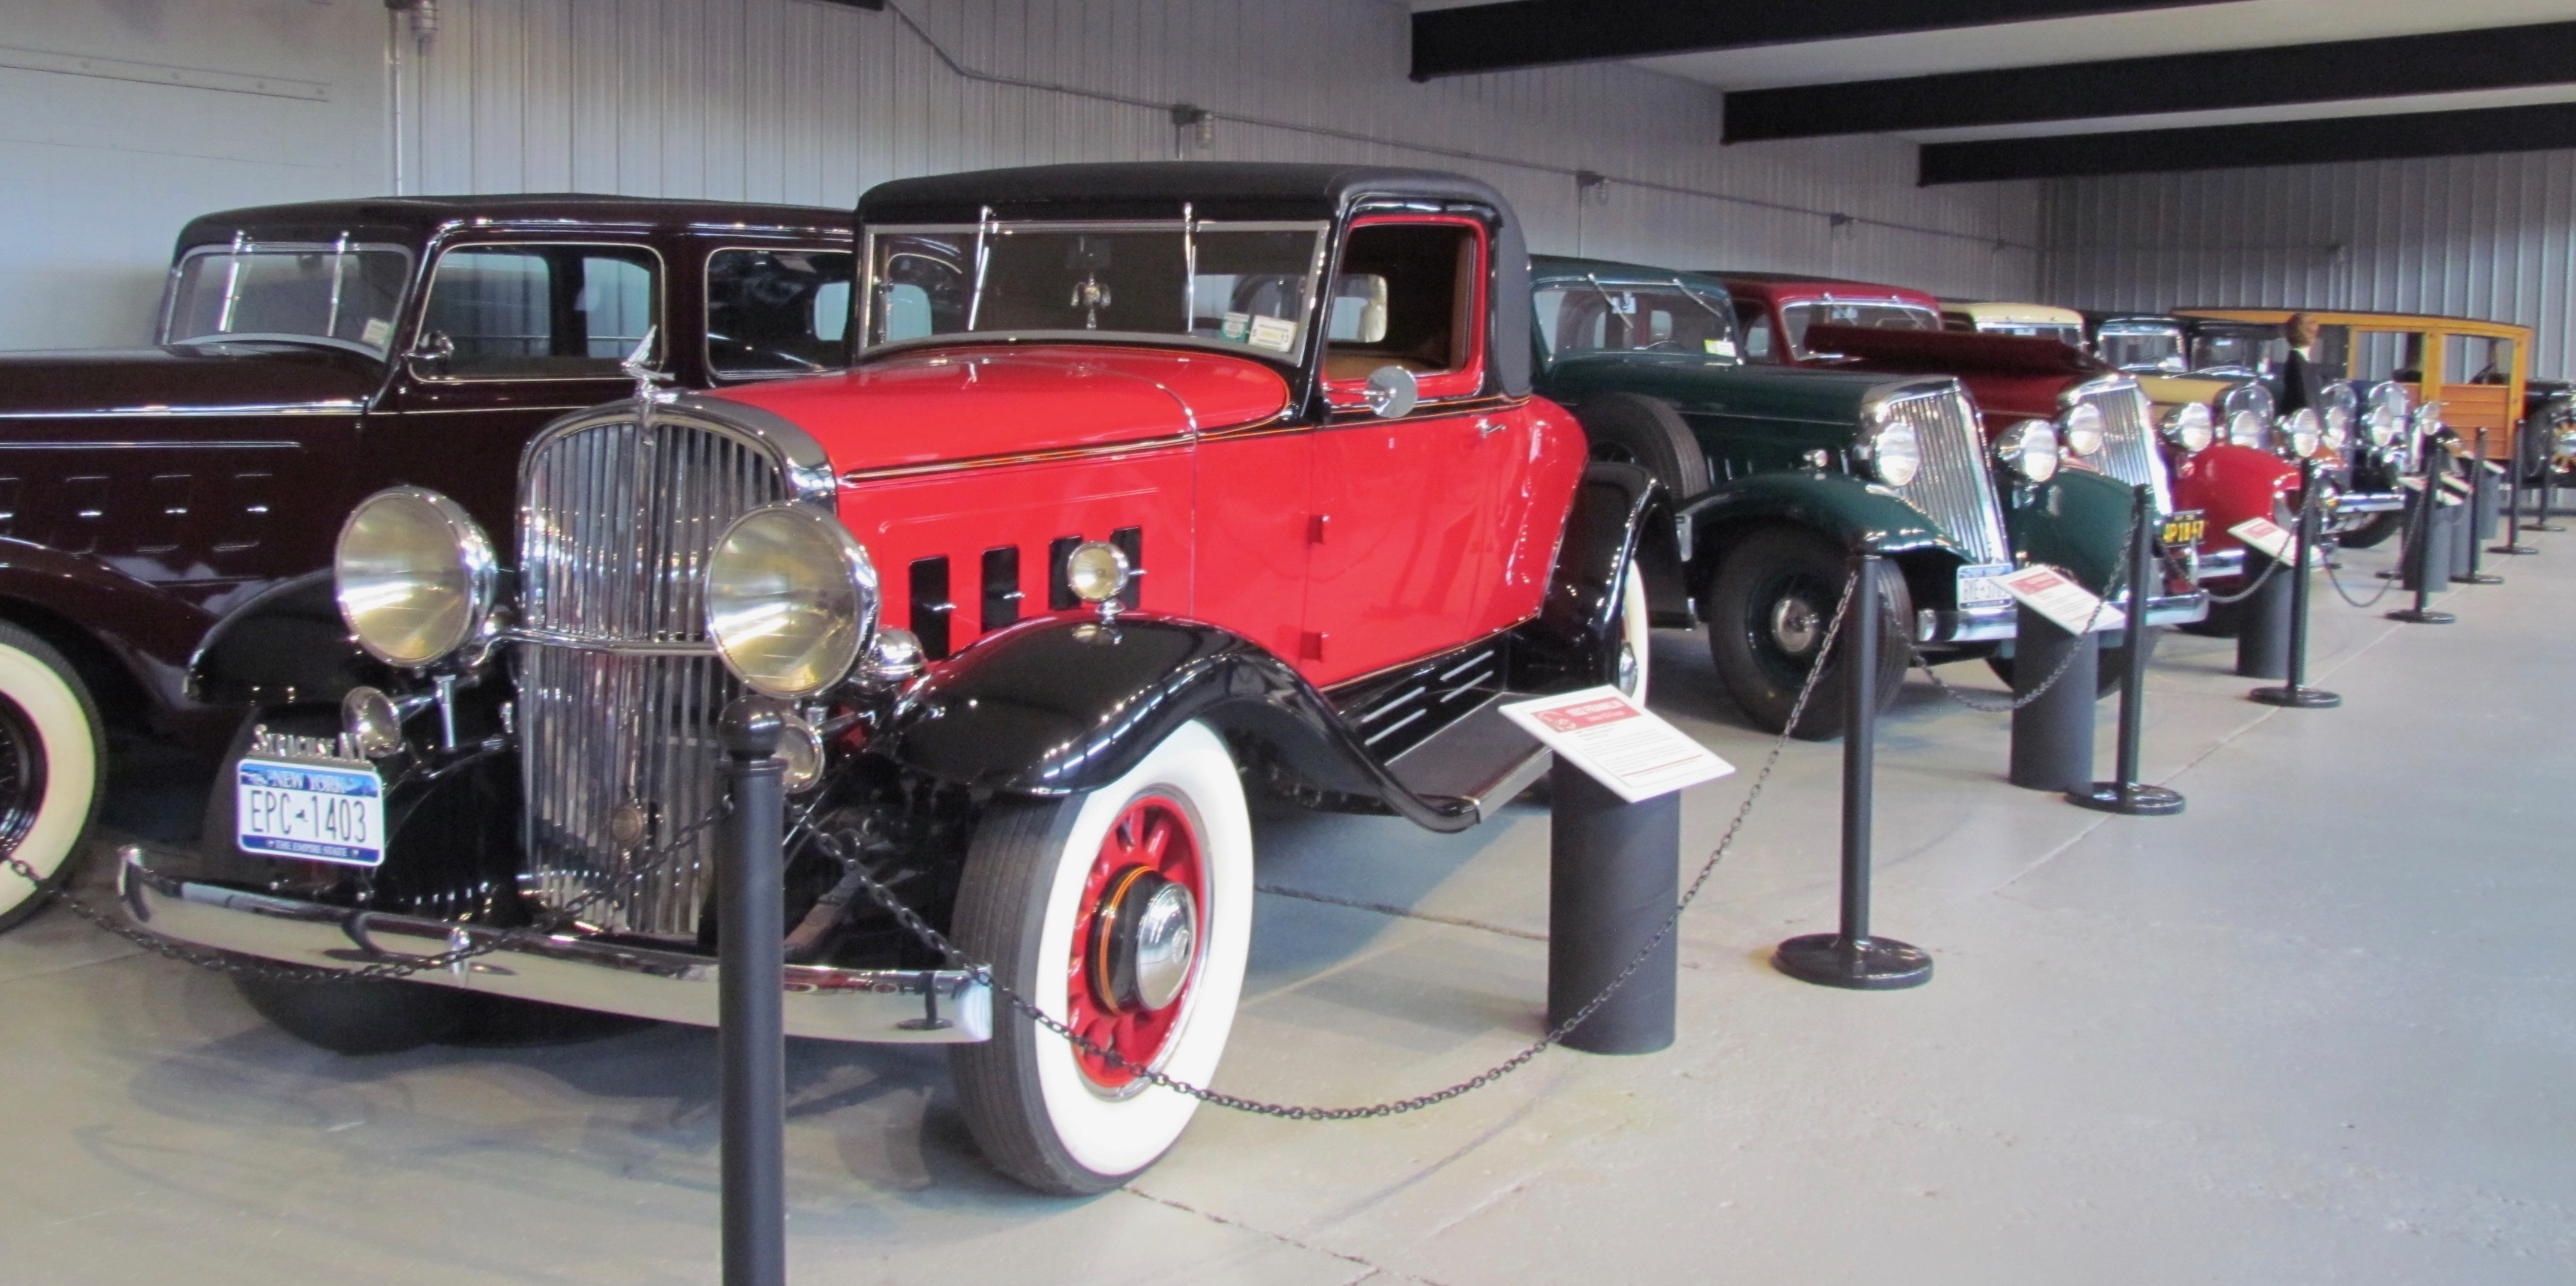 Classic car museum, Museum helps to restore a town, ClassicCars.com Journal